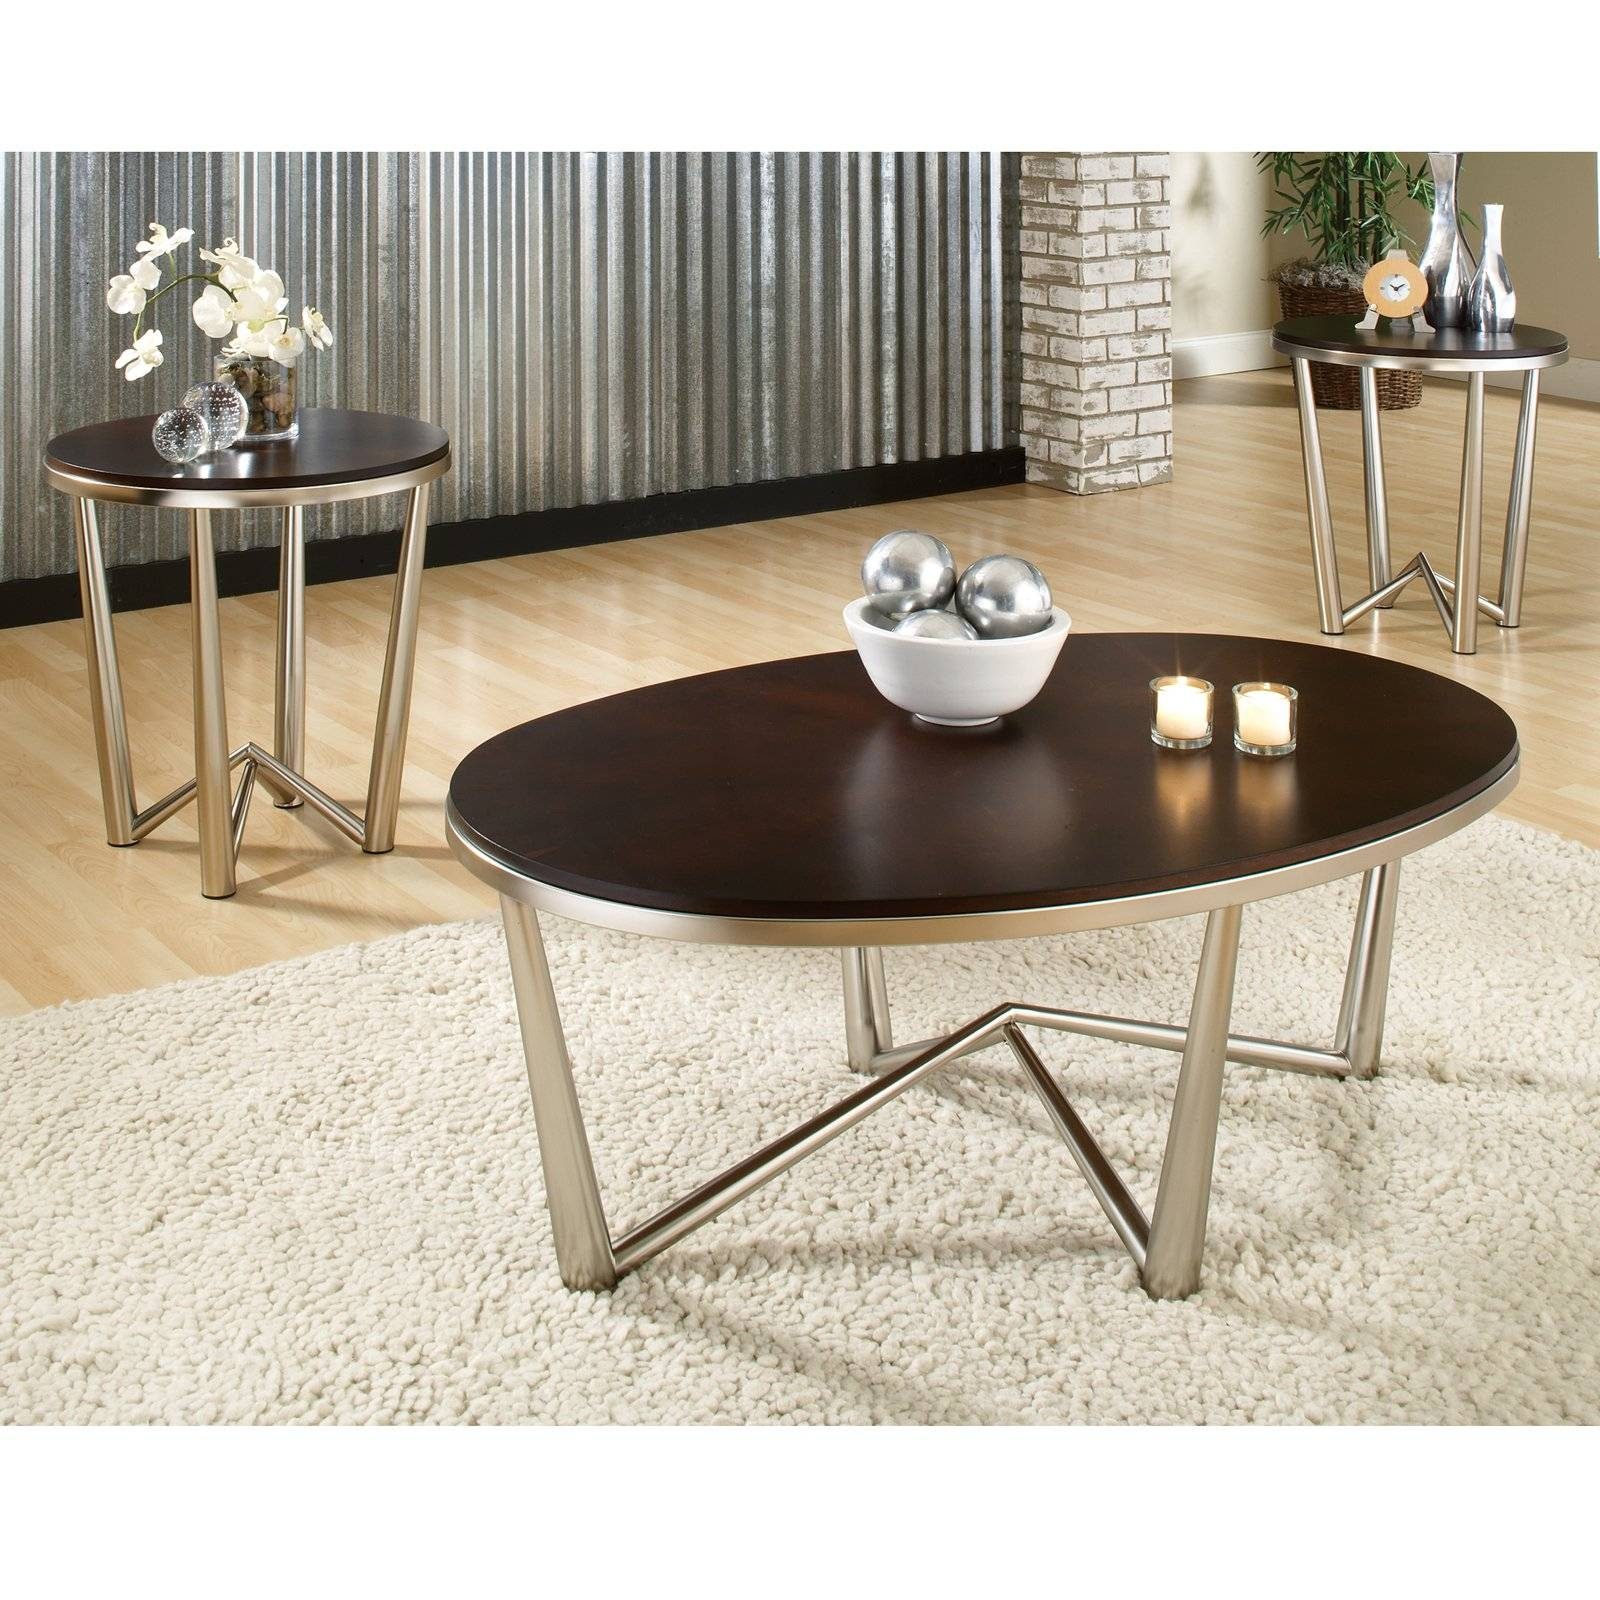 Coffee Table : 3 Coffee Table Set My Existing Coffee Table In throughout Coffee Tables With Oval Shape (Image 7 of 30)